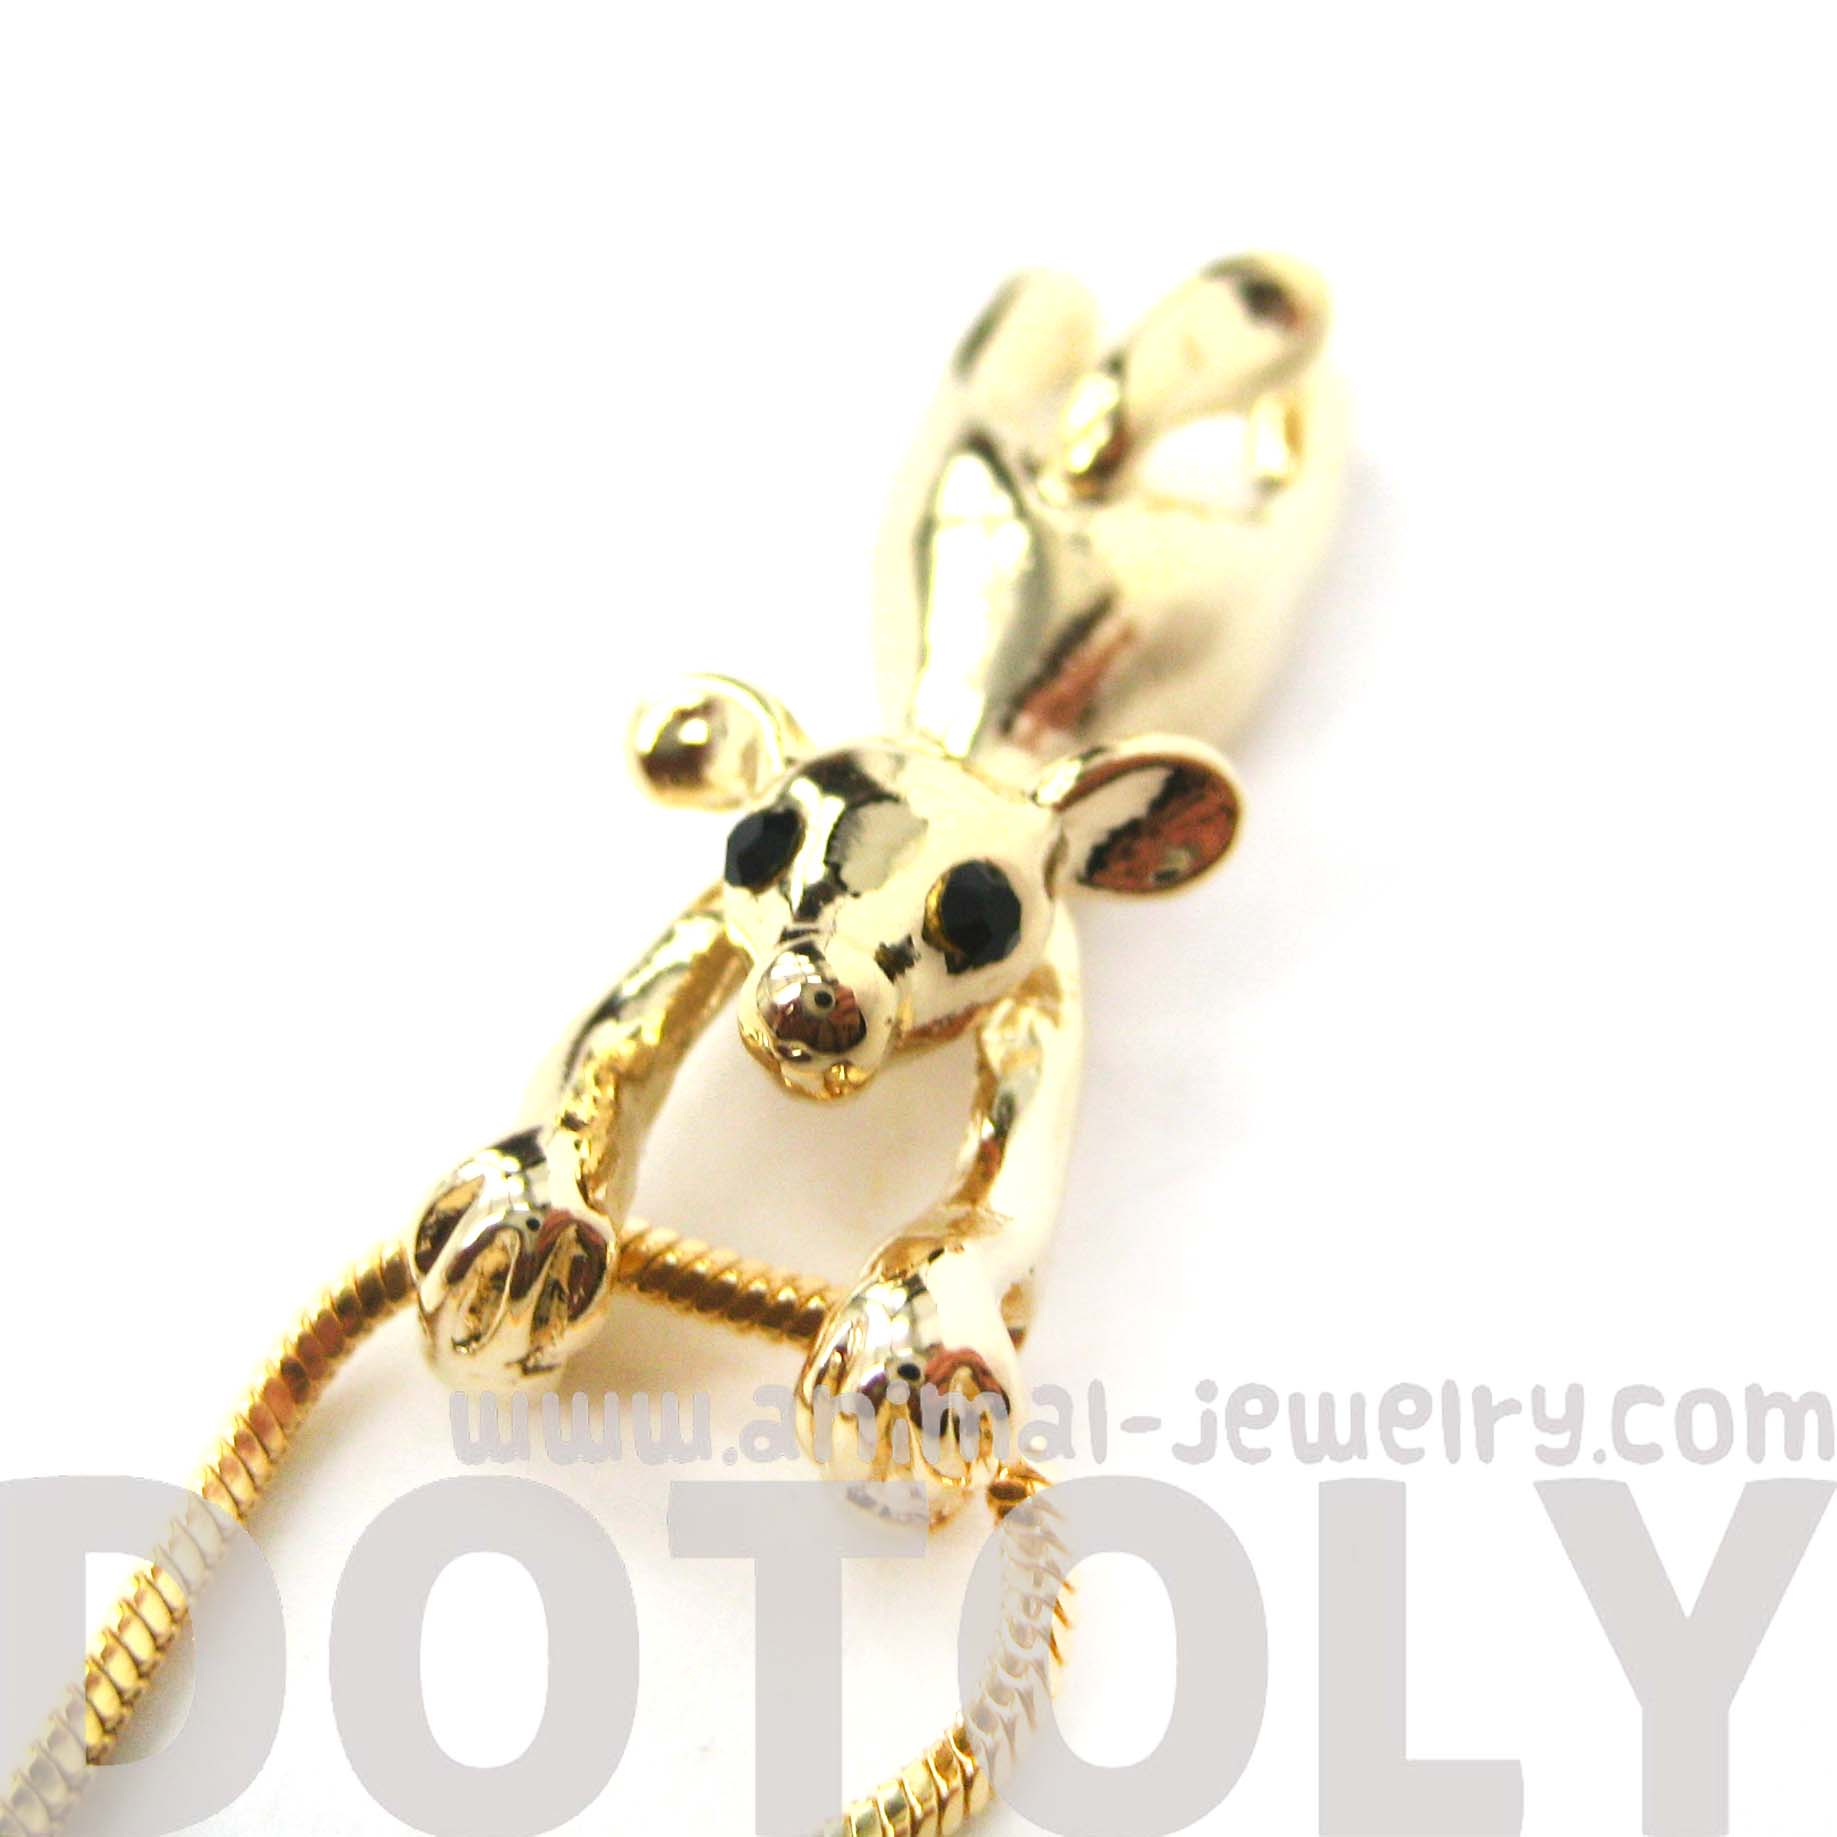 Unique mouse mice dangling animal pendant necklace in gold unique mouse mice dangling animal pendant necklace in gold thumbnail 4 mozeypictures Images